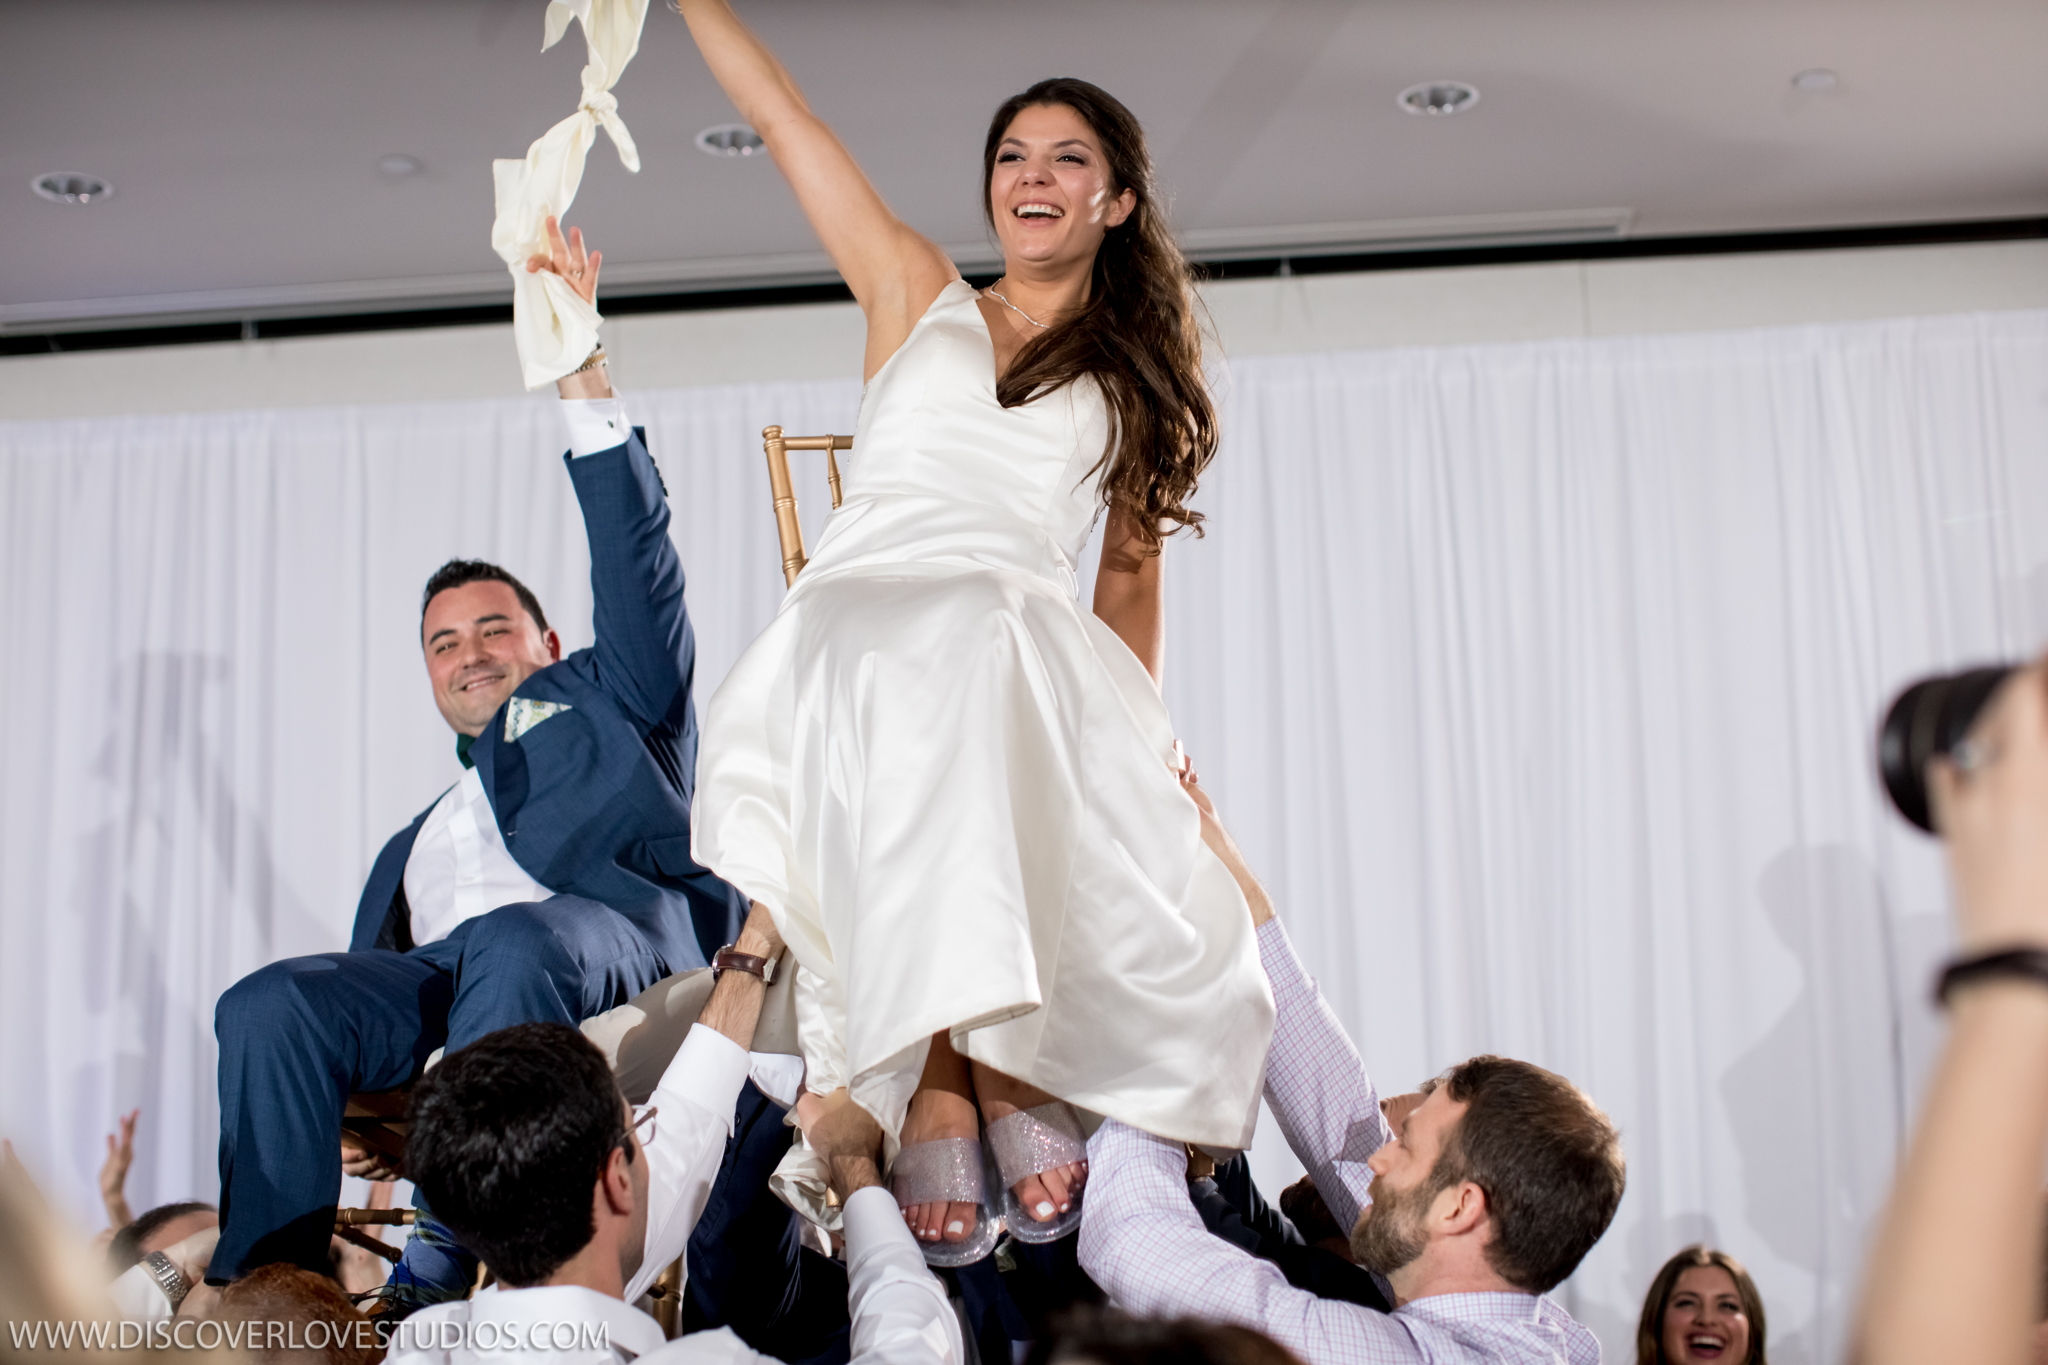 Bride and groom lifted during the hora captured by Discover Love Studios